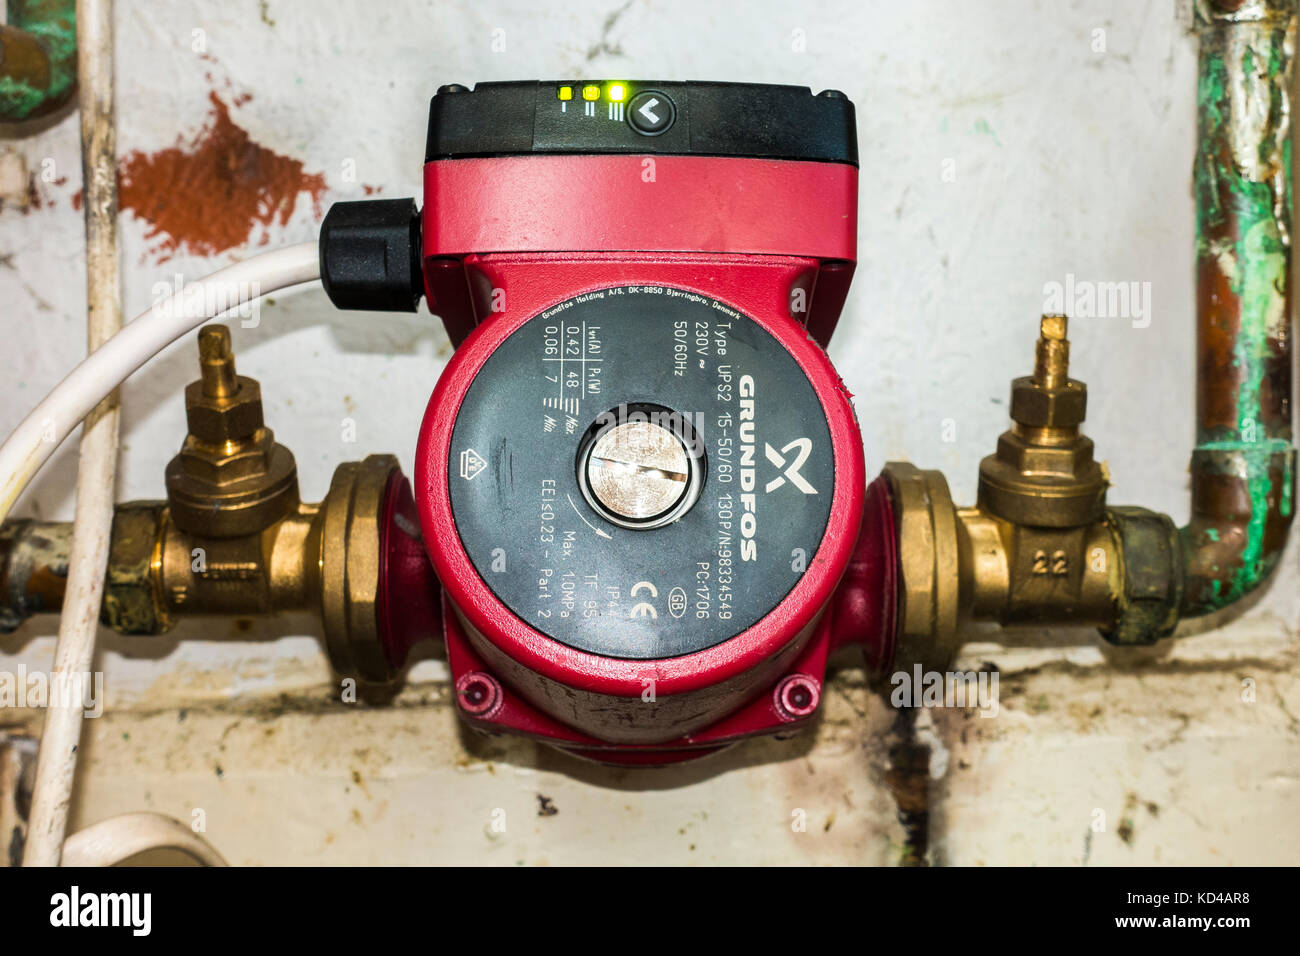 Plumbing And Heating Stock Photos Amp Plumbing And Heating